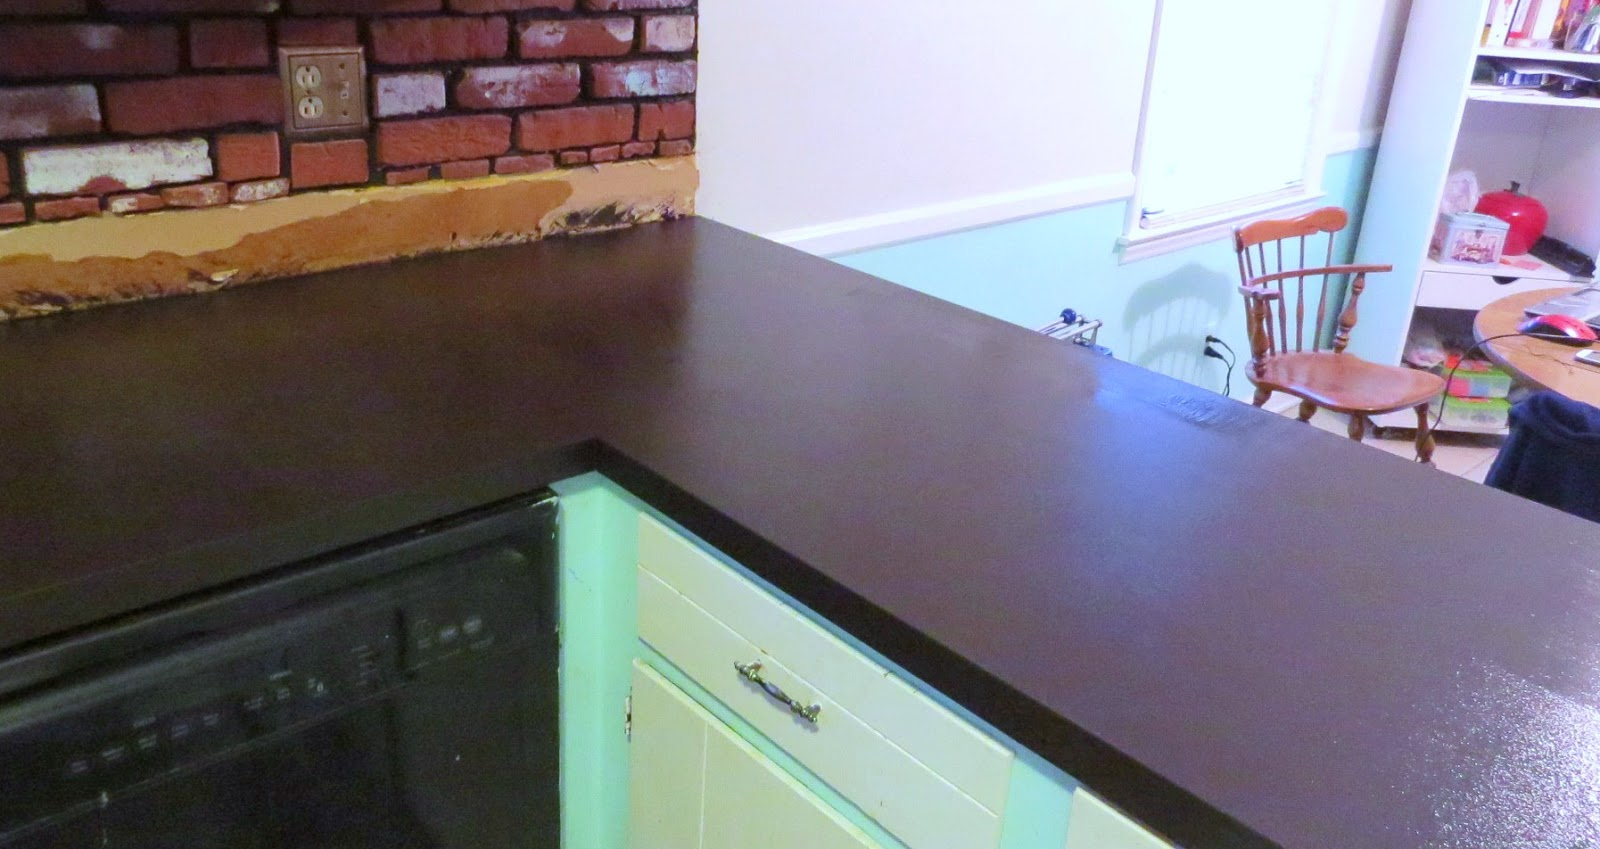 No Title Necessary: So this happened...painted laminate countertops